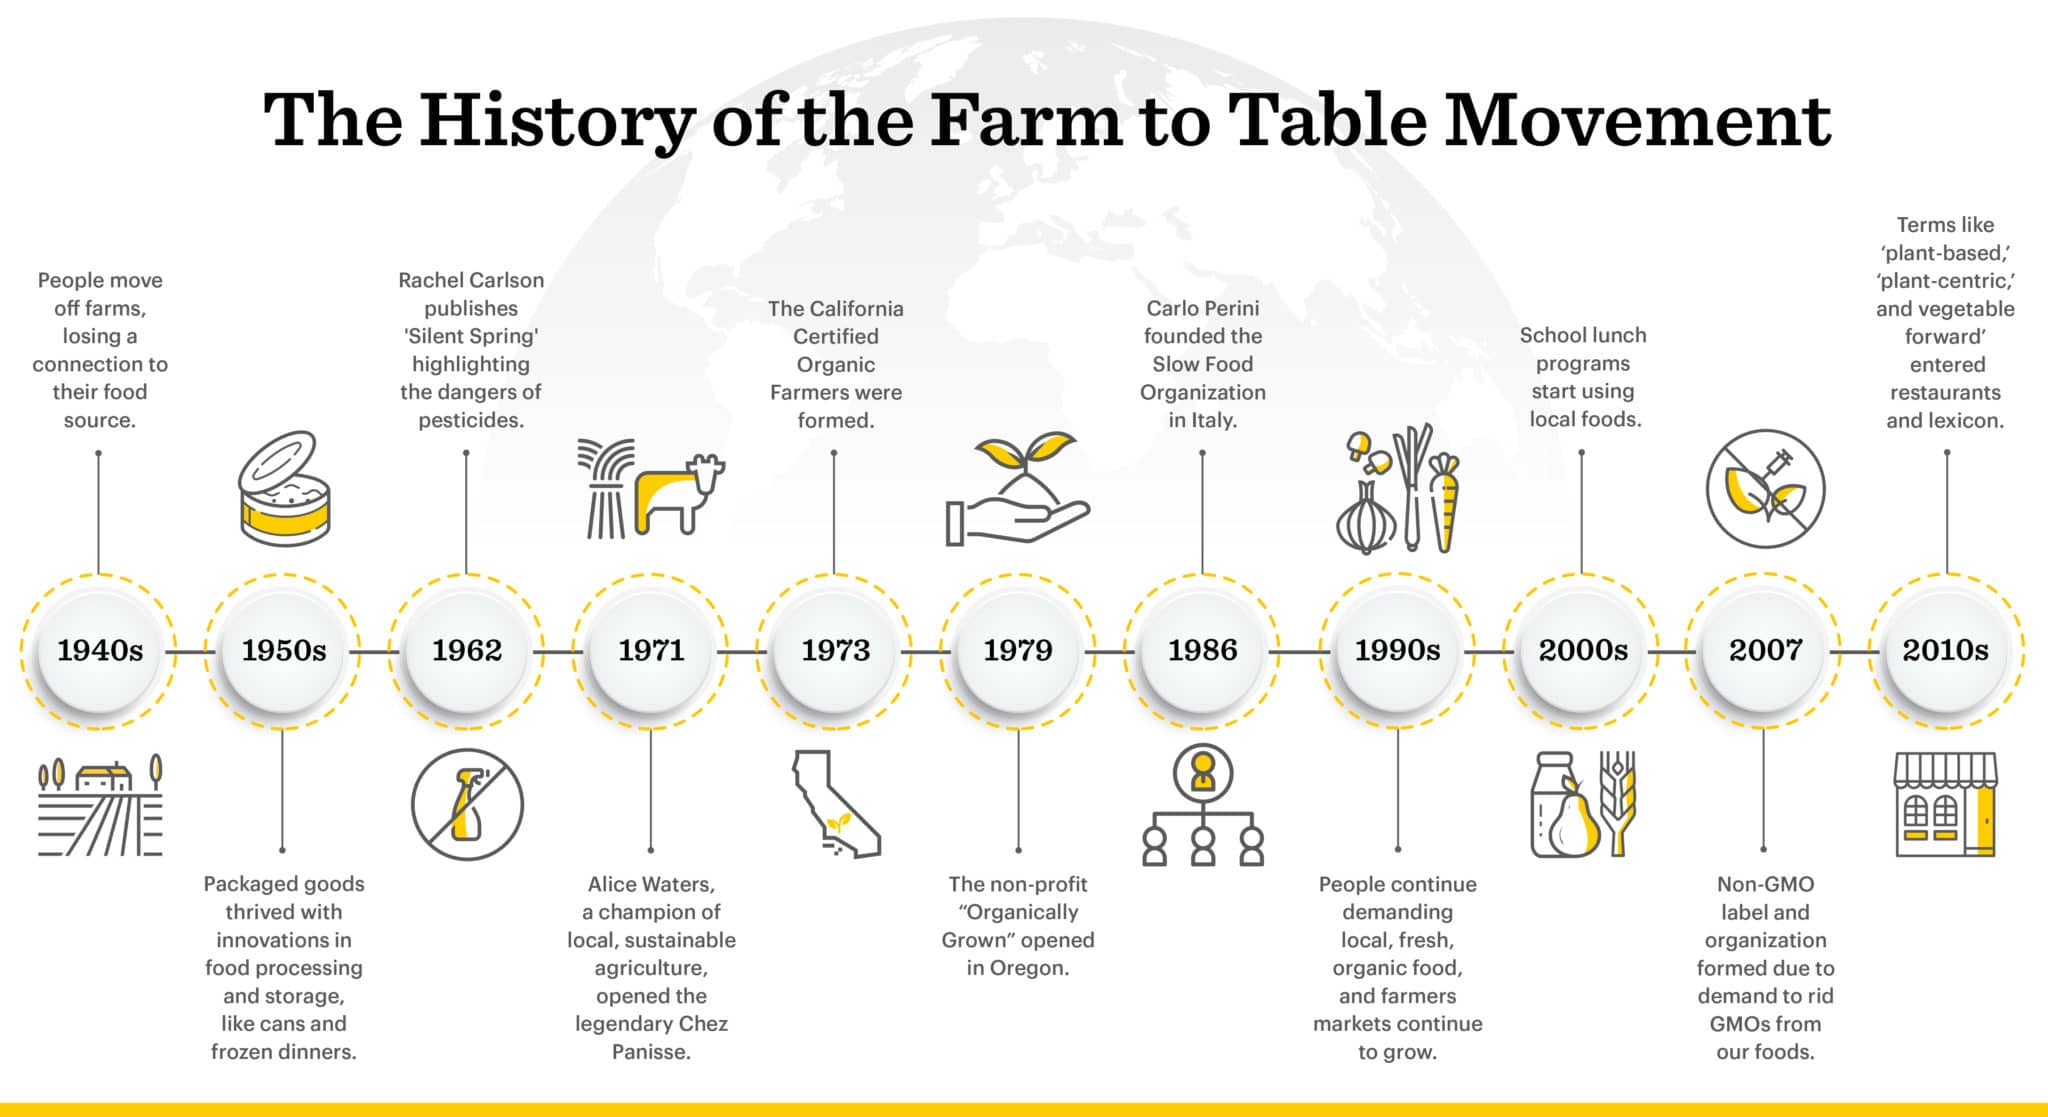 Our timeline covers 60 years of food trends- from canned goods to organic, plant-based restaurants